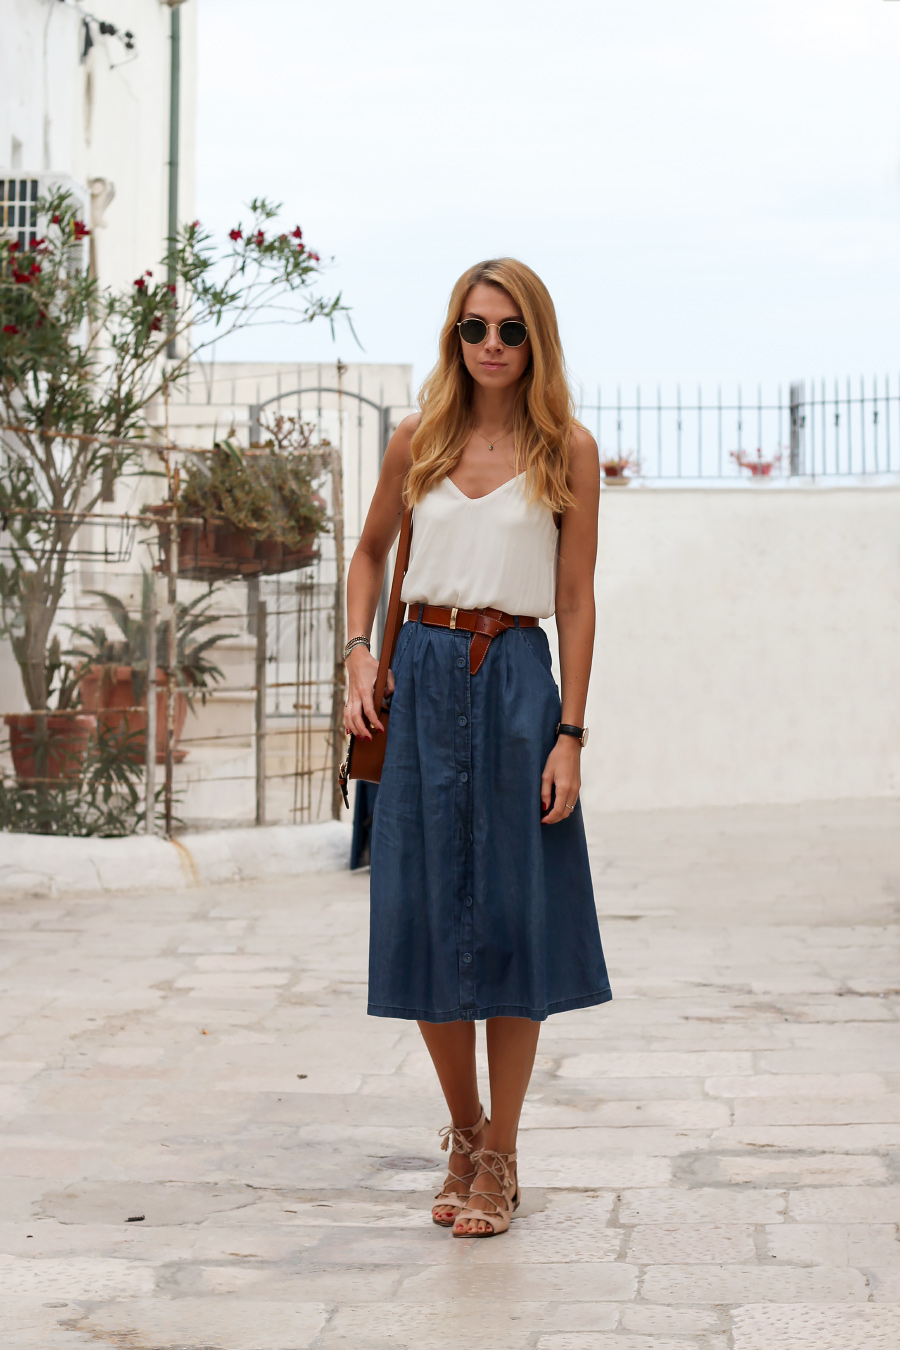 denim midi skirt, lace-up flats and tan accessories